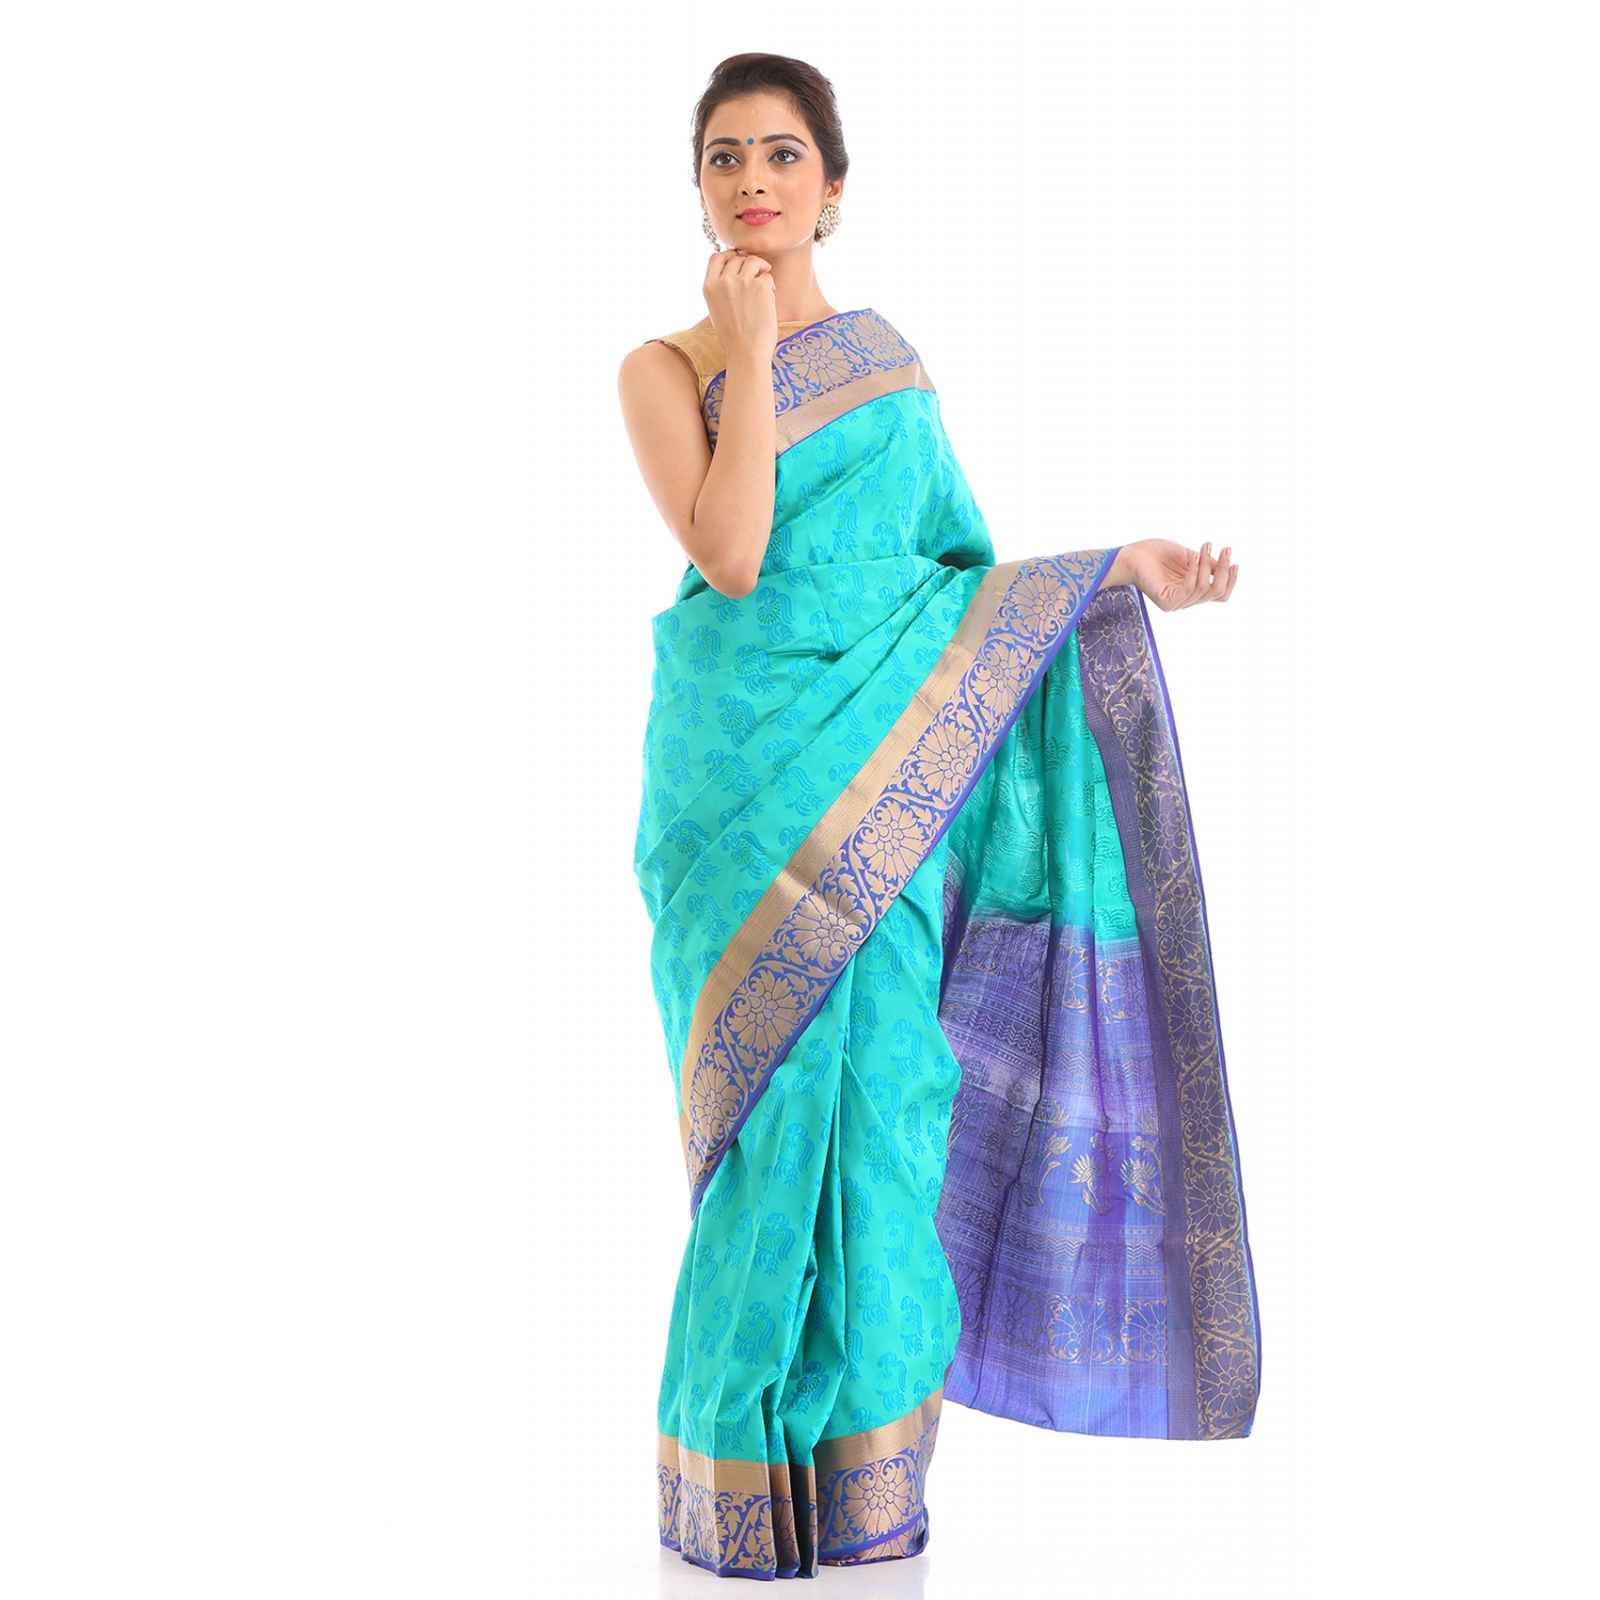 Wear this dazzling embossed handloom silk saree in sky blue to carry an air of natural beauty. Neatly done border enhances the glamour of the polished fabric. Product Code :- ZV-257 Sky Blue Handloom Soft Silk Embossed Saree Our Website :- www.zarivastram.com , http://bit.ly/2c9p9Fh #zarivastram #style #indianbride #sarees #salwarkameez #designer #indianfashion #designerwear #exclusive #saree #desifashion #anarkali #traditional #womenwear